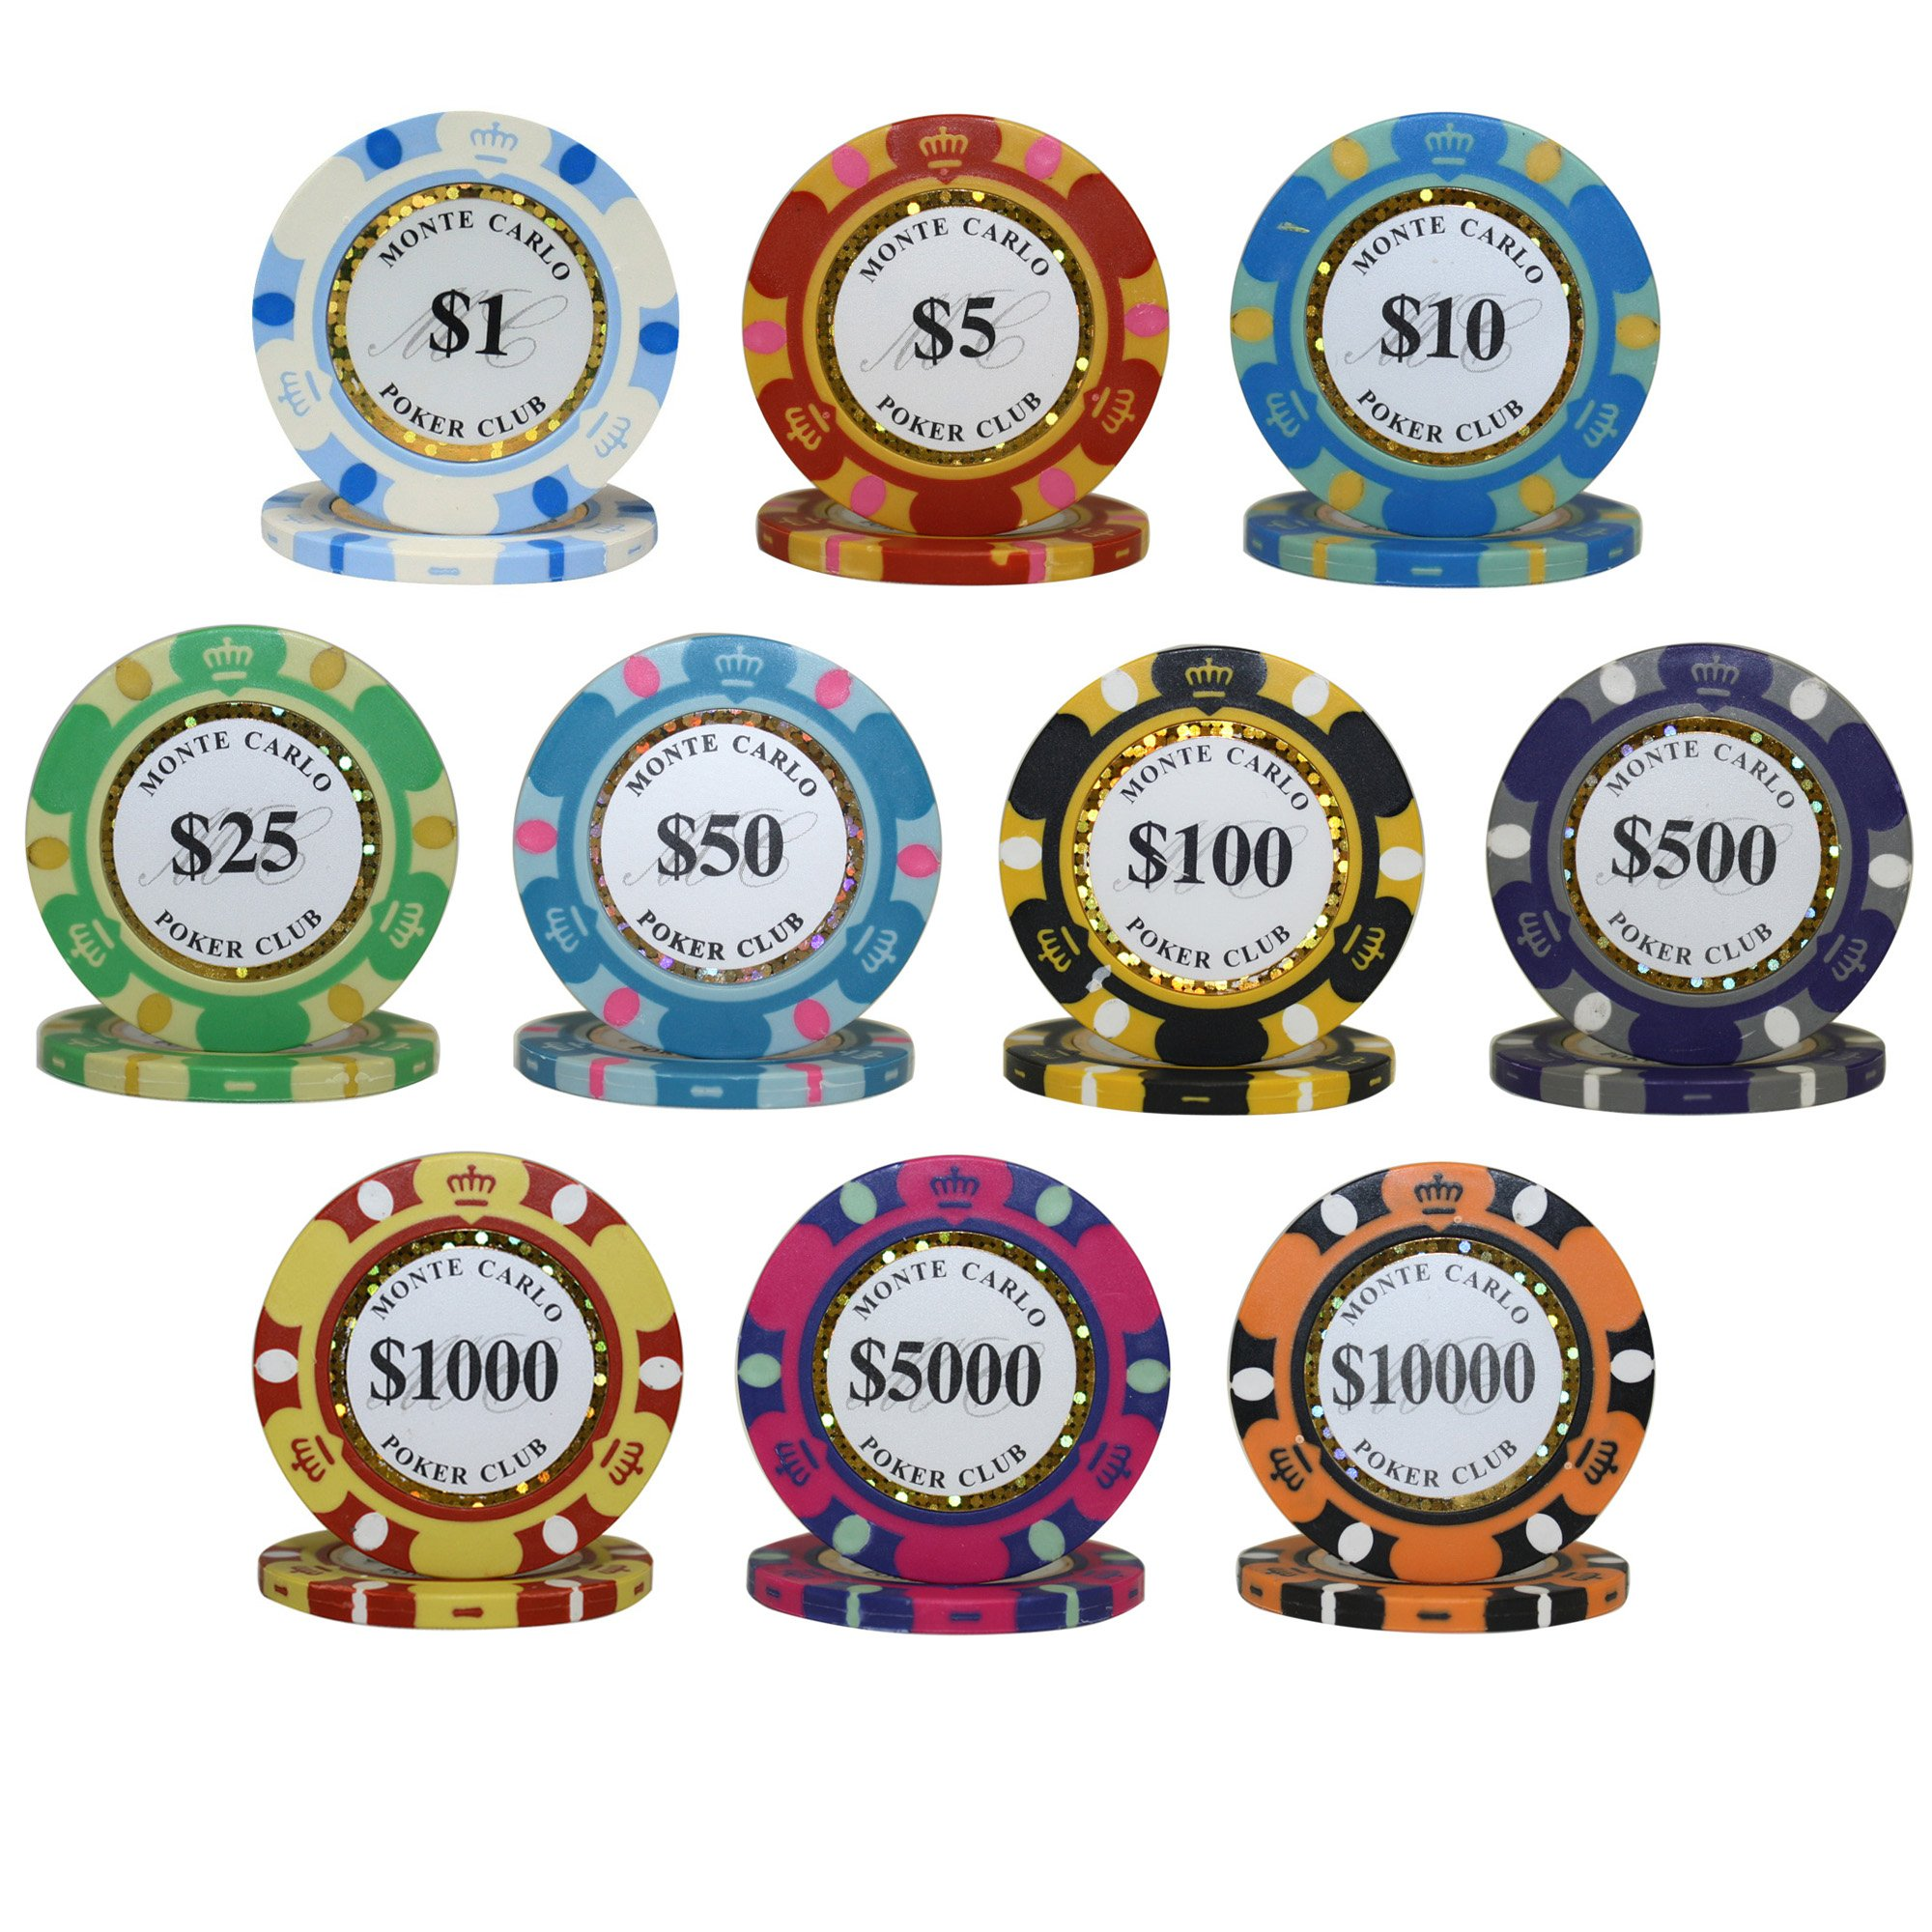 MRC 750pcs Monte Carlo Poker Club Casino Poker Chips Set with High Gloss Wood Case Custom Build by Mrc Poker